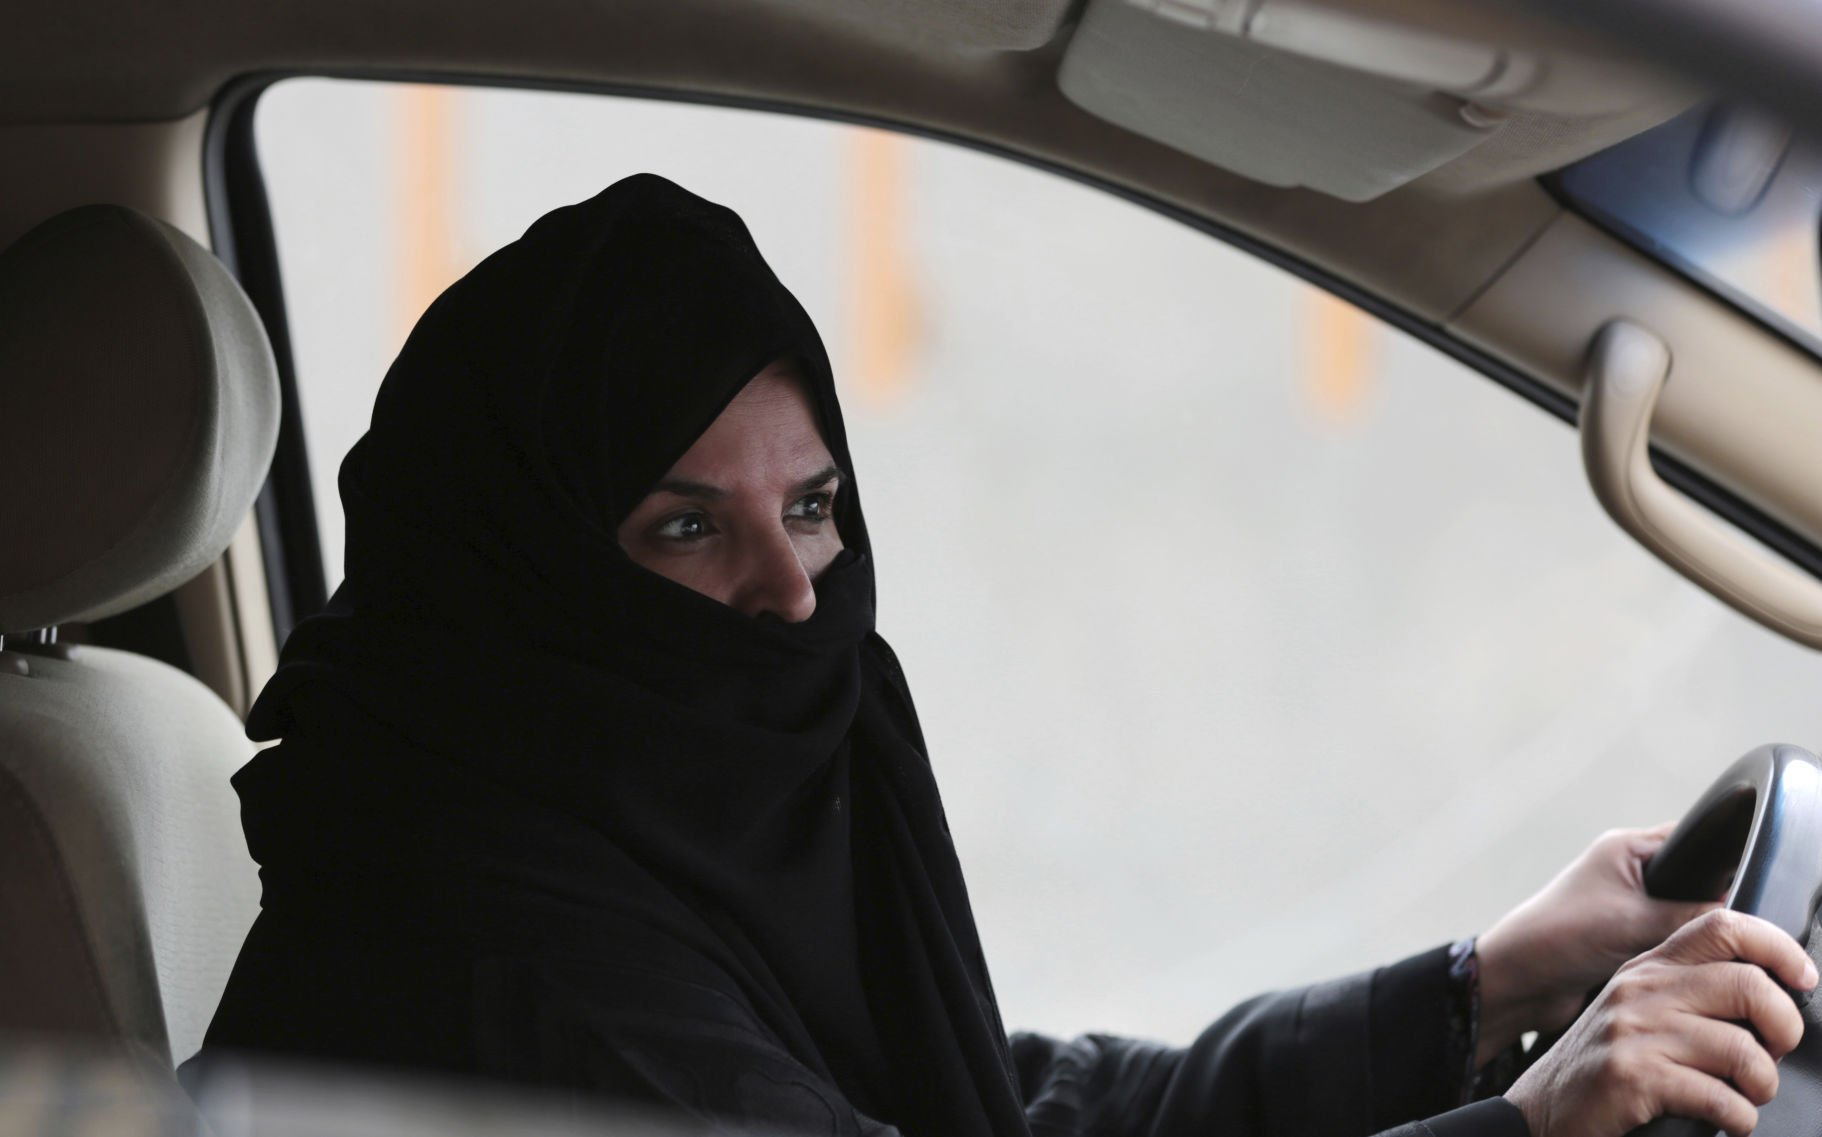 Saudi women can drive, but it's not a feminist paradise quite yet